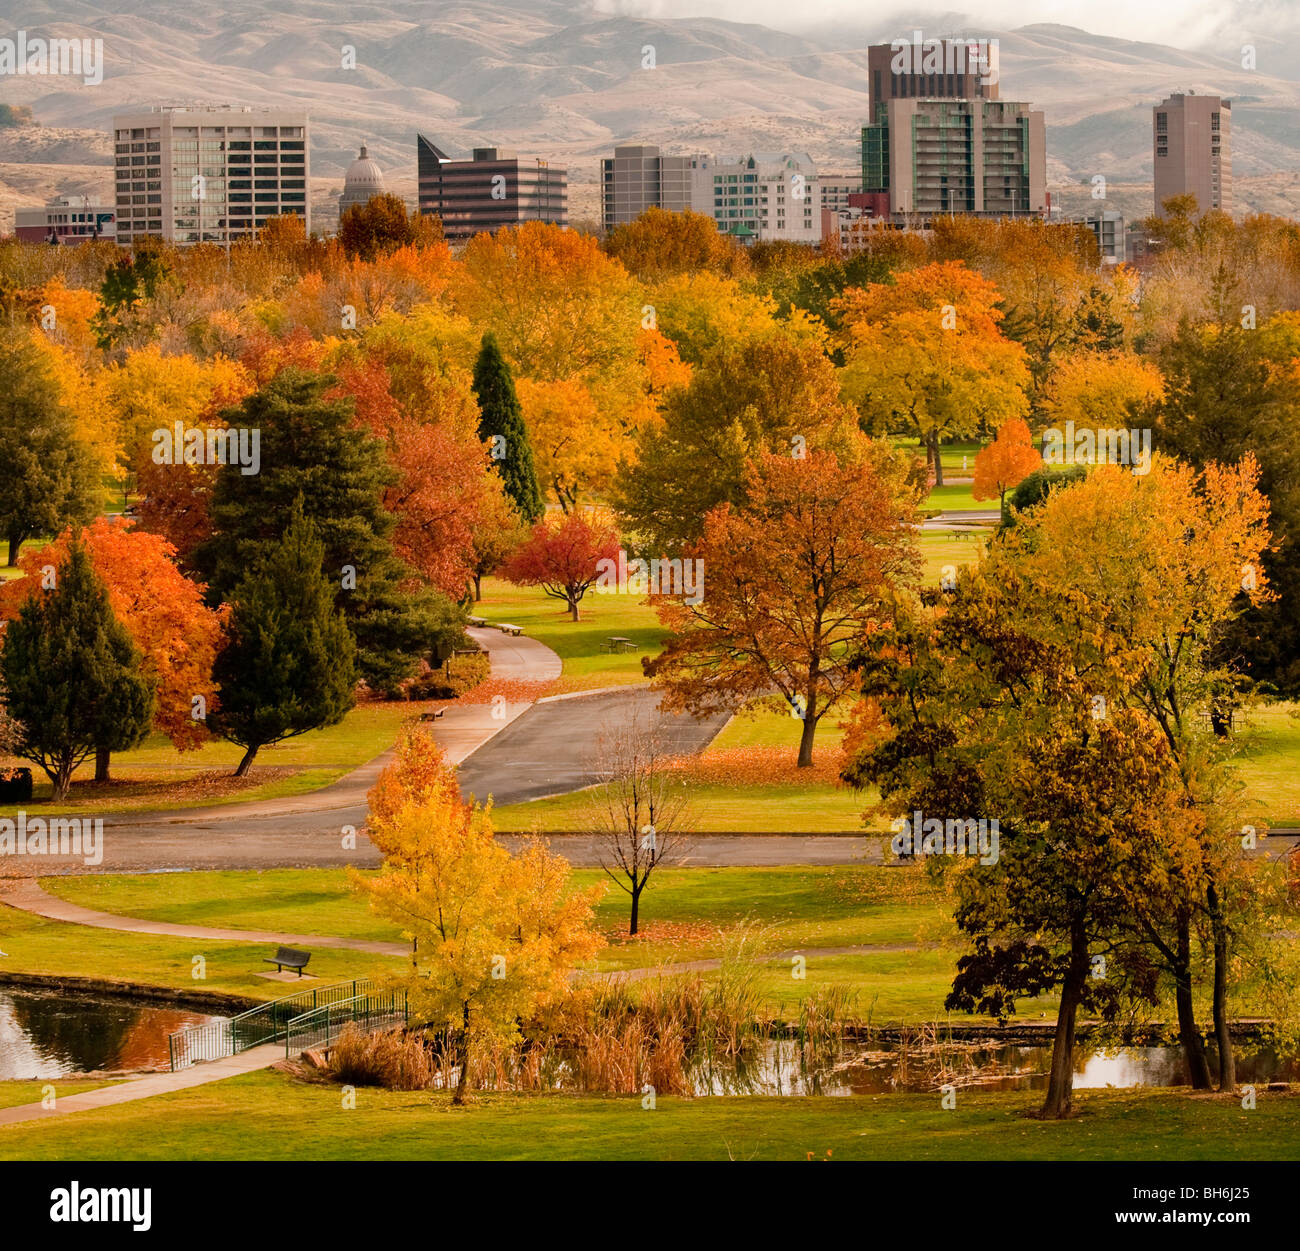 Idaho, Boise. Autumn scenic of Ann Morrison Park and downtown - Stock Image